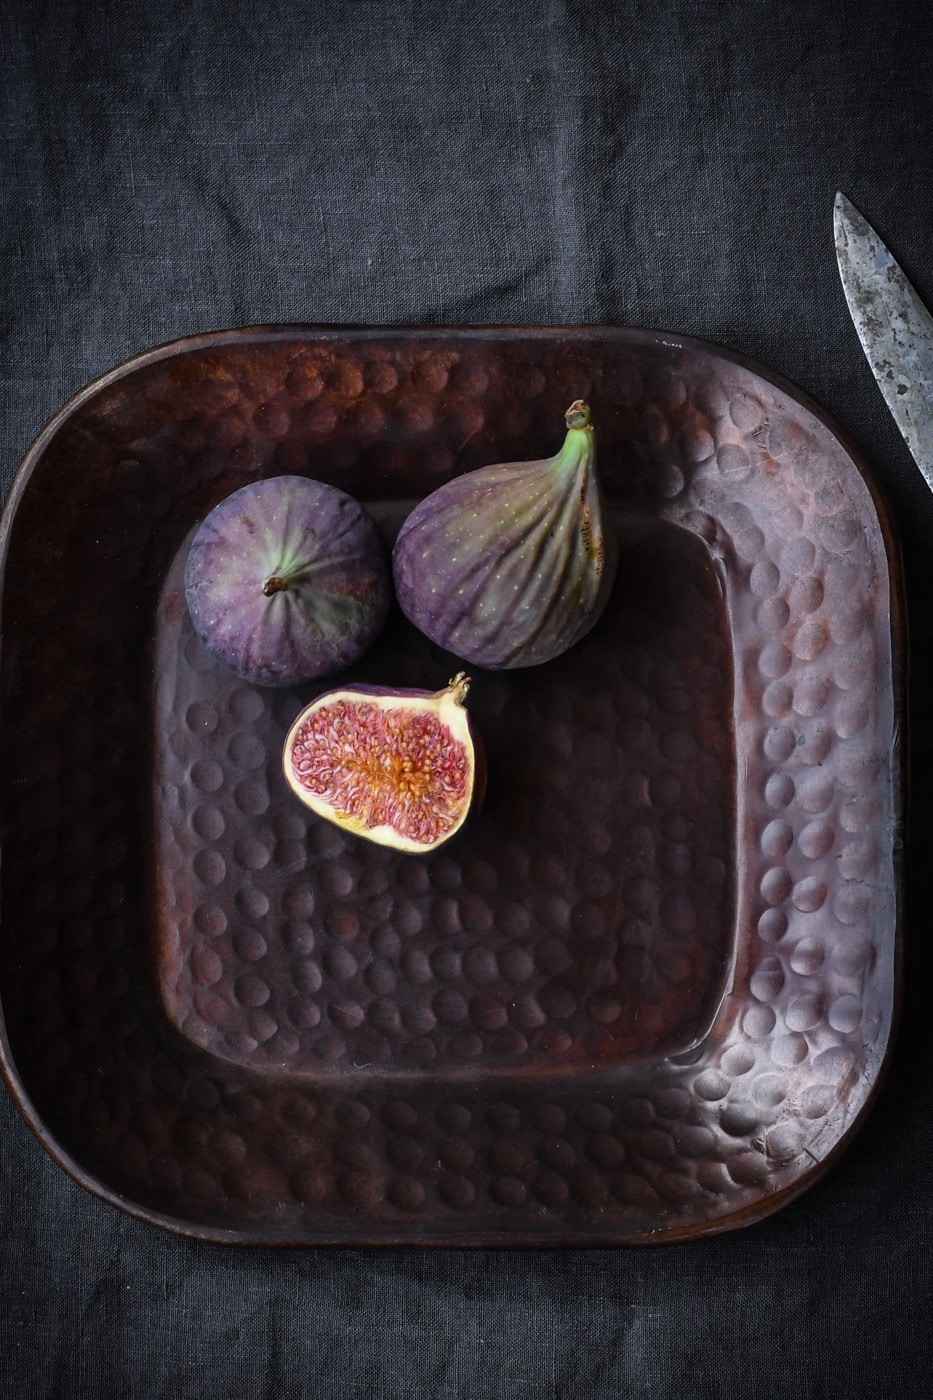 A handy square shaped tray, its the perfect size to hold small items by the bedside or an arrangement of collected objects on the coffee table. In fact, its so versatile it could be whipped out for parties to serve hors d'oeuvre or to keep condiments together in the kitchen. Its beautiful hammered finish means it'll look good however you choose to use it!